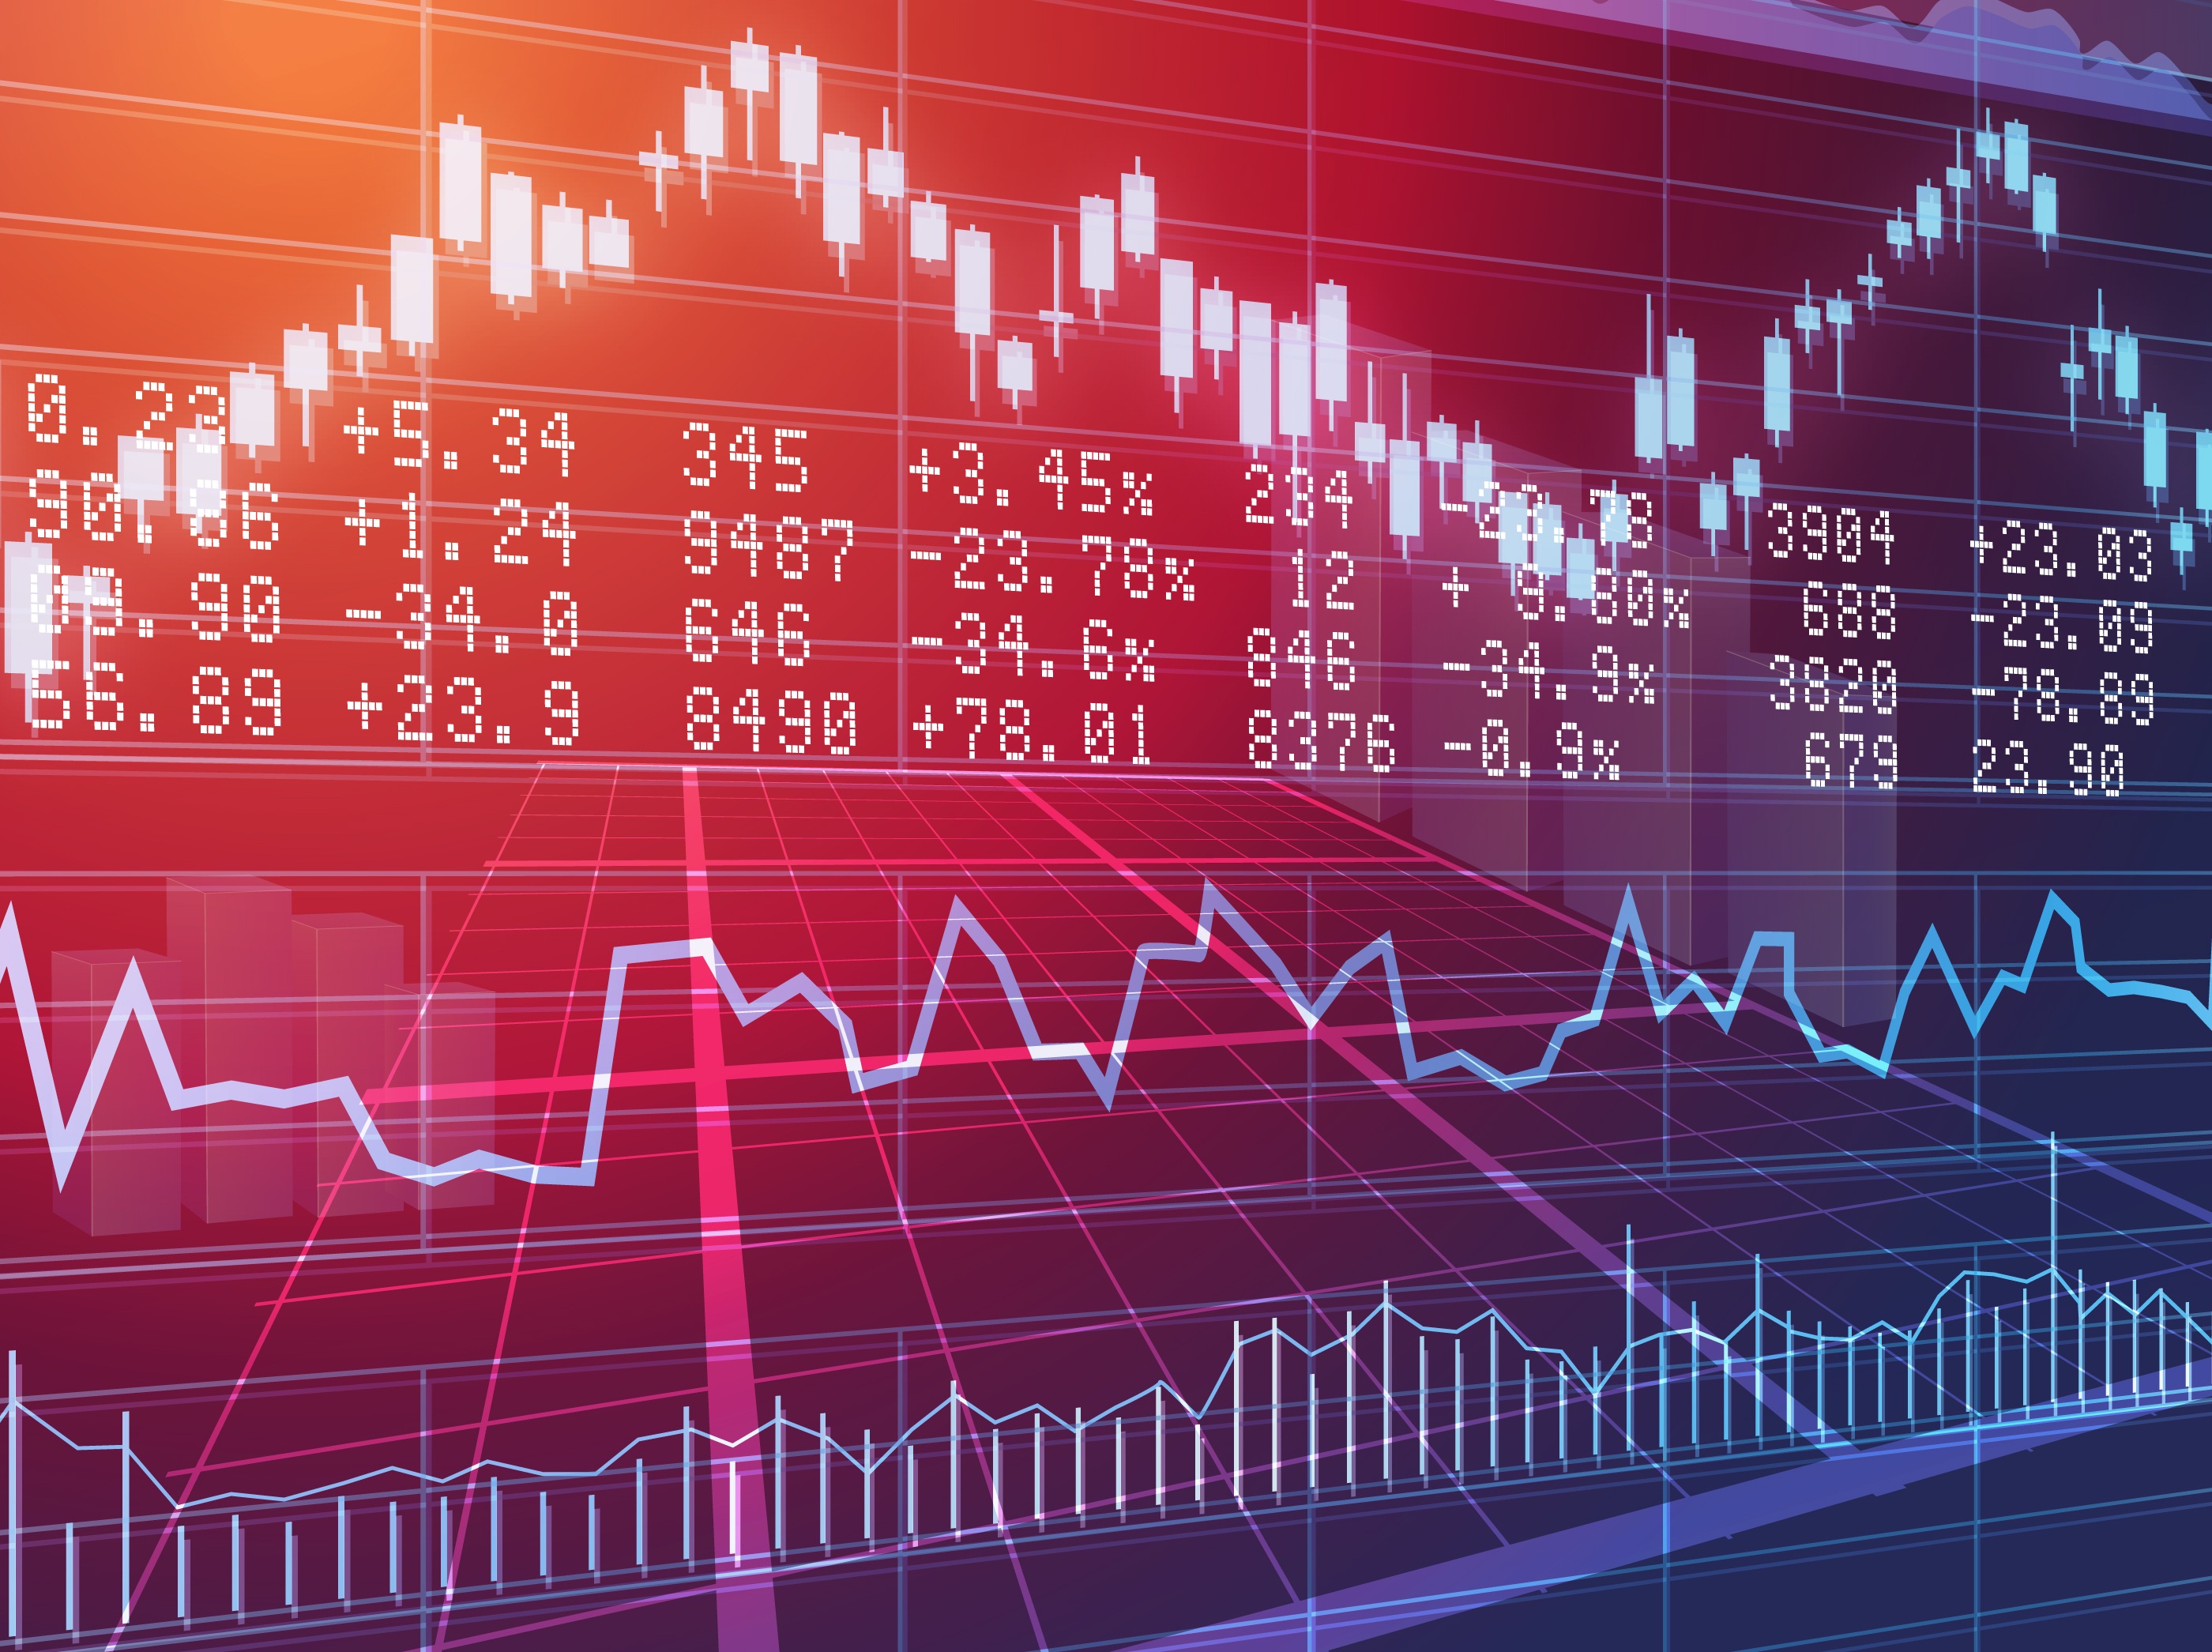 stocks Learn how to buy and sell stocks with etrade we'll give you the education, analysis, guidance, and tools you need to find stocks that are right for you.